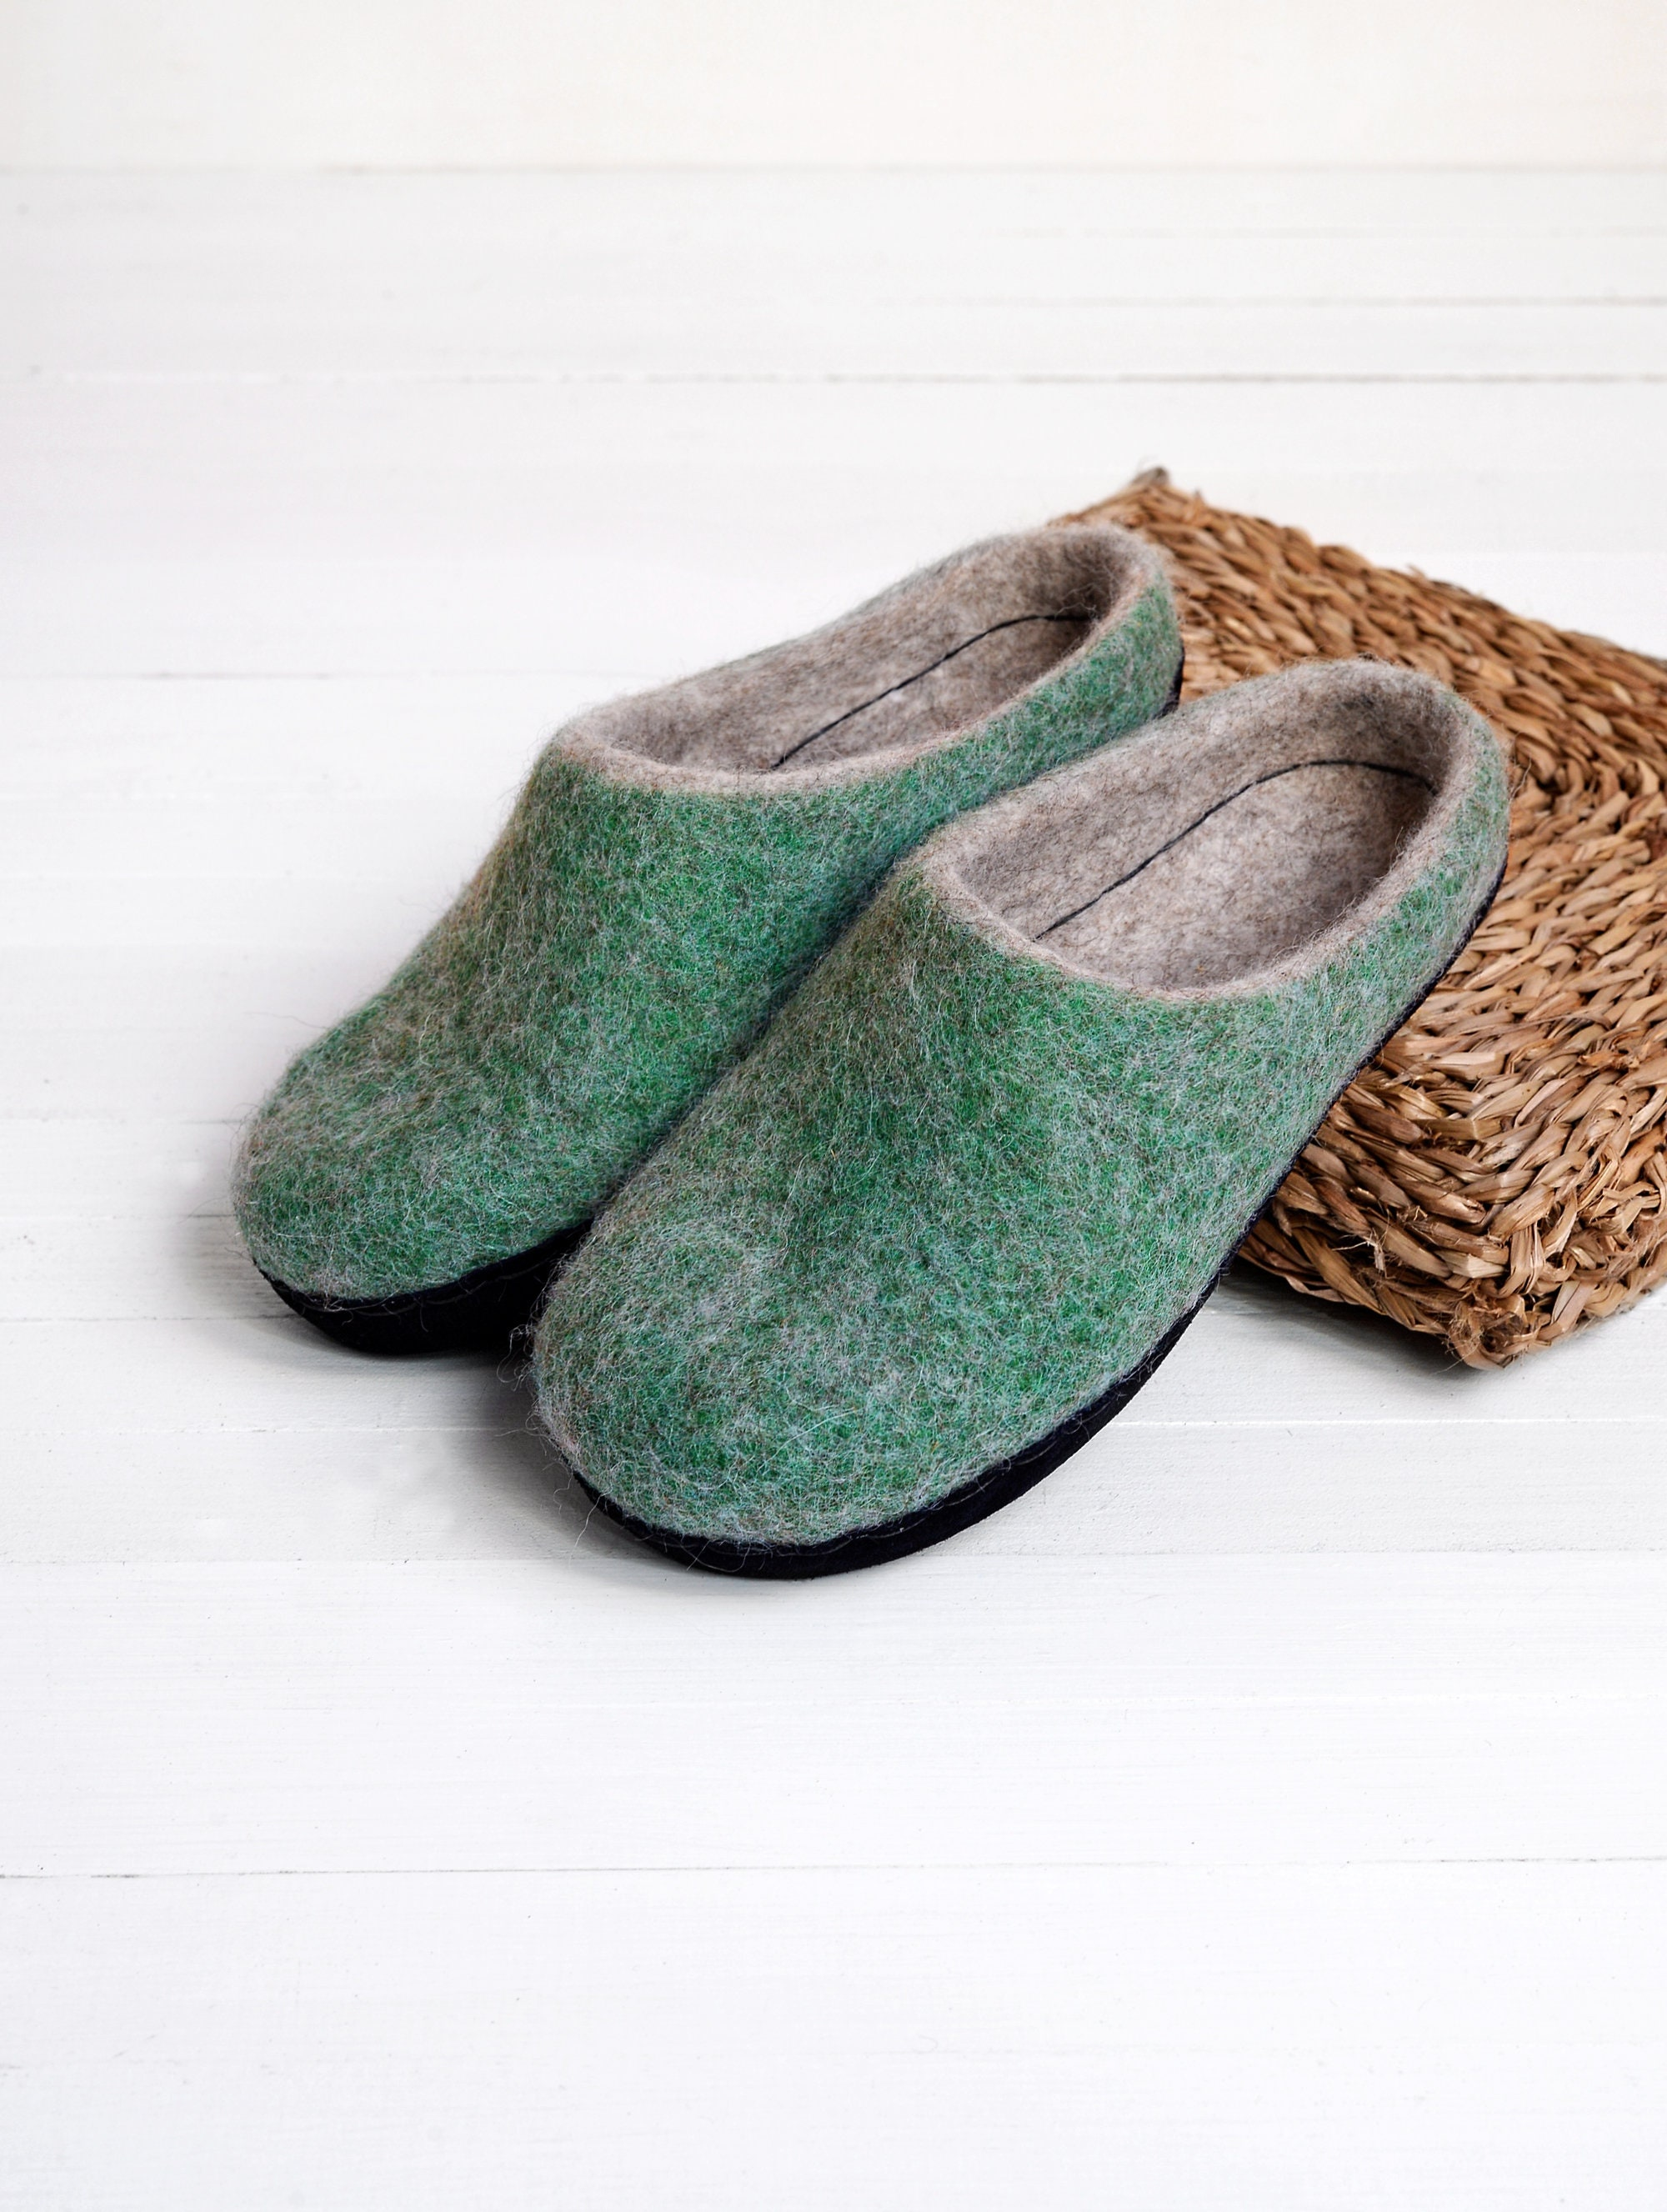 warm felt slippers for women in green wool color with leather sole